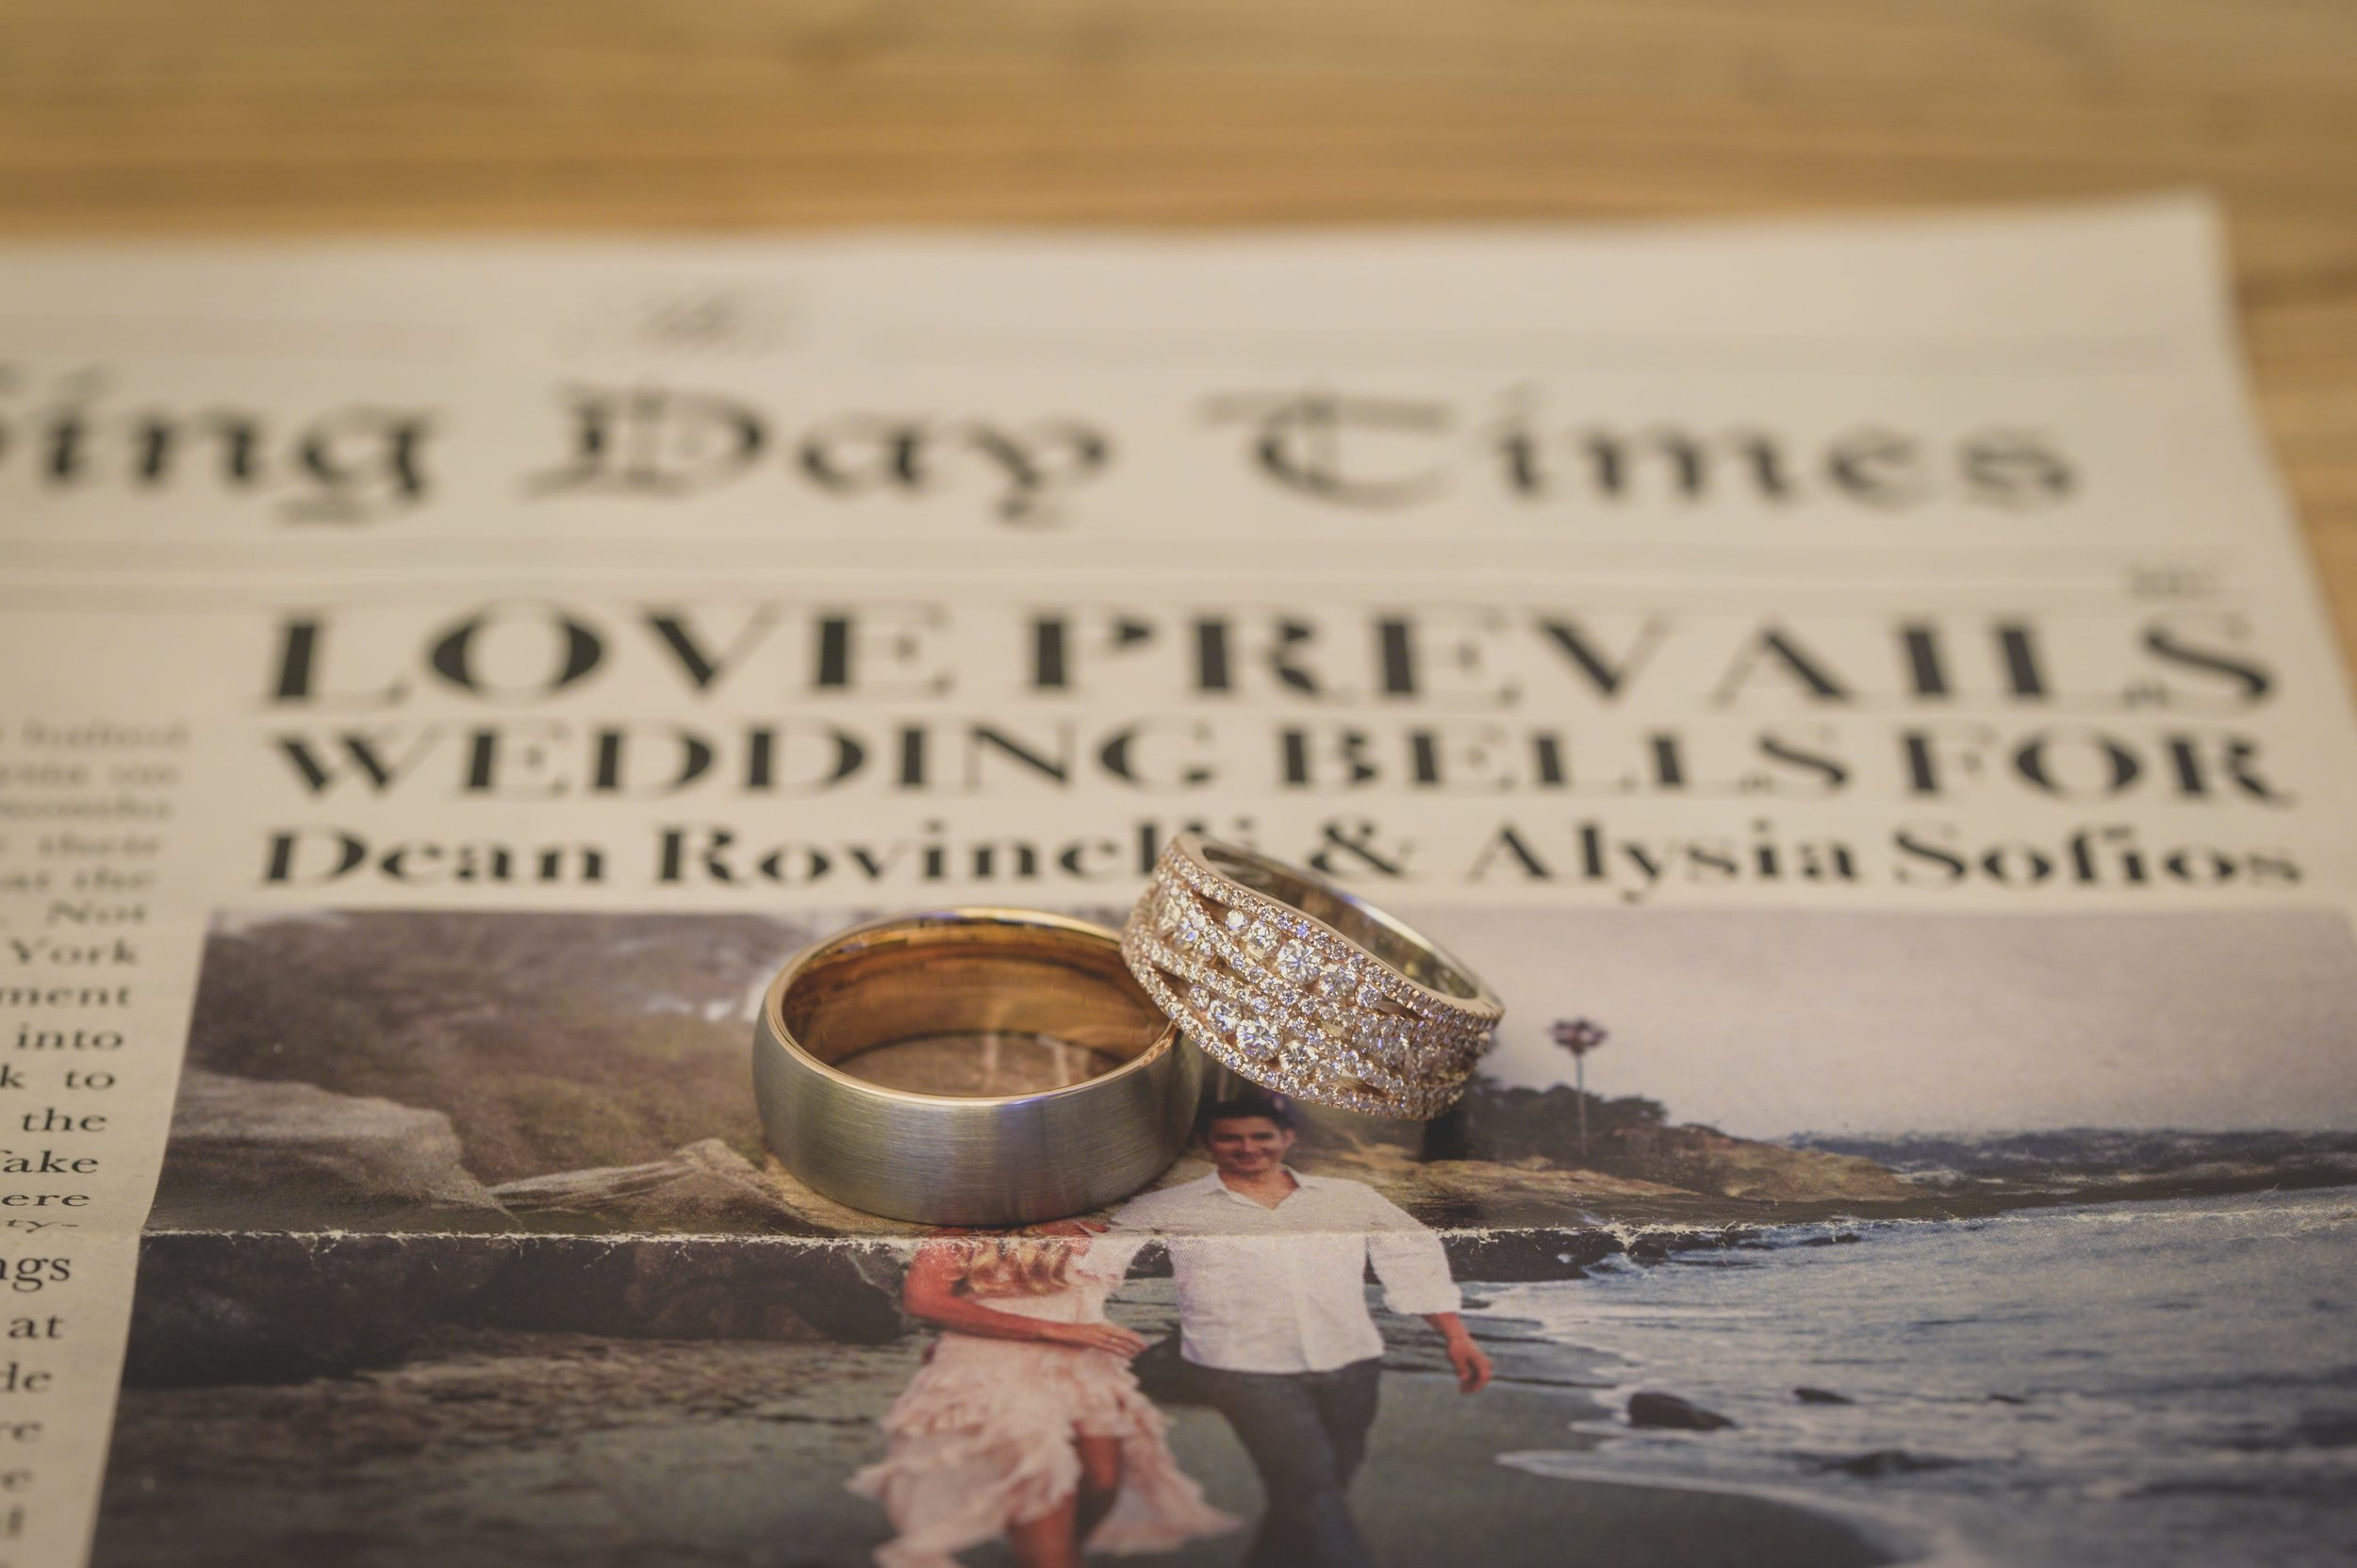 Wedding Photography Packages - Heritage Park, Dana Point, CA - Wedding bands on top of a local newspaper with the headline story showing the newly engaged couple.